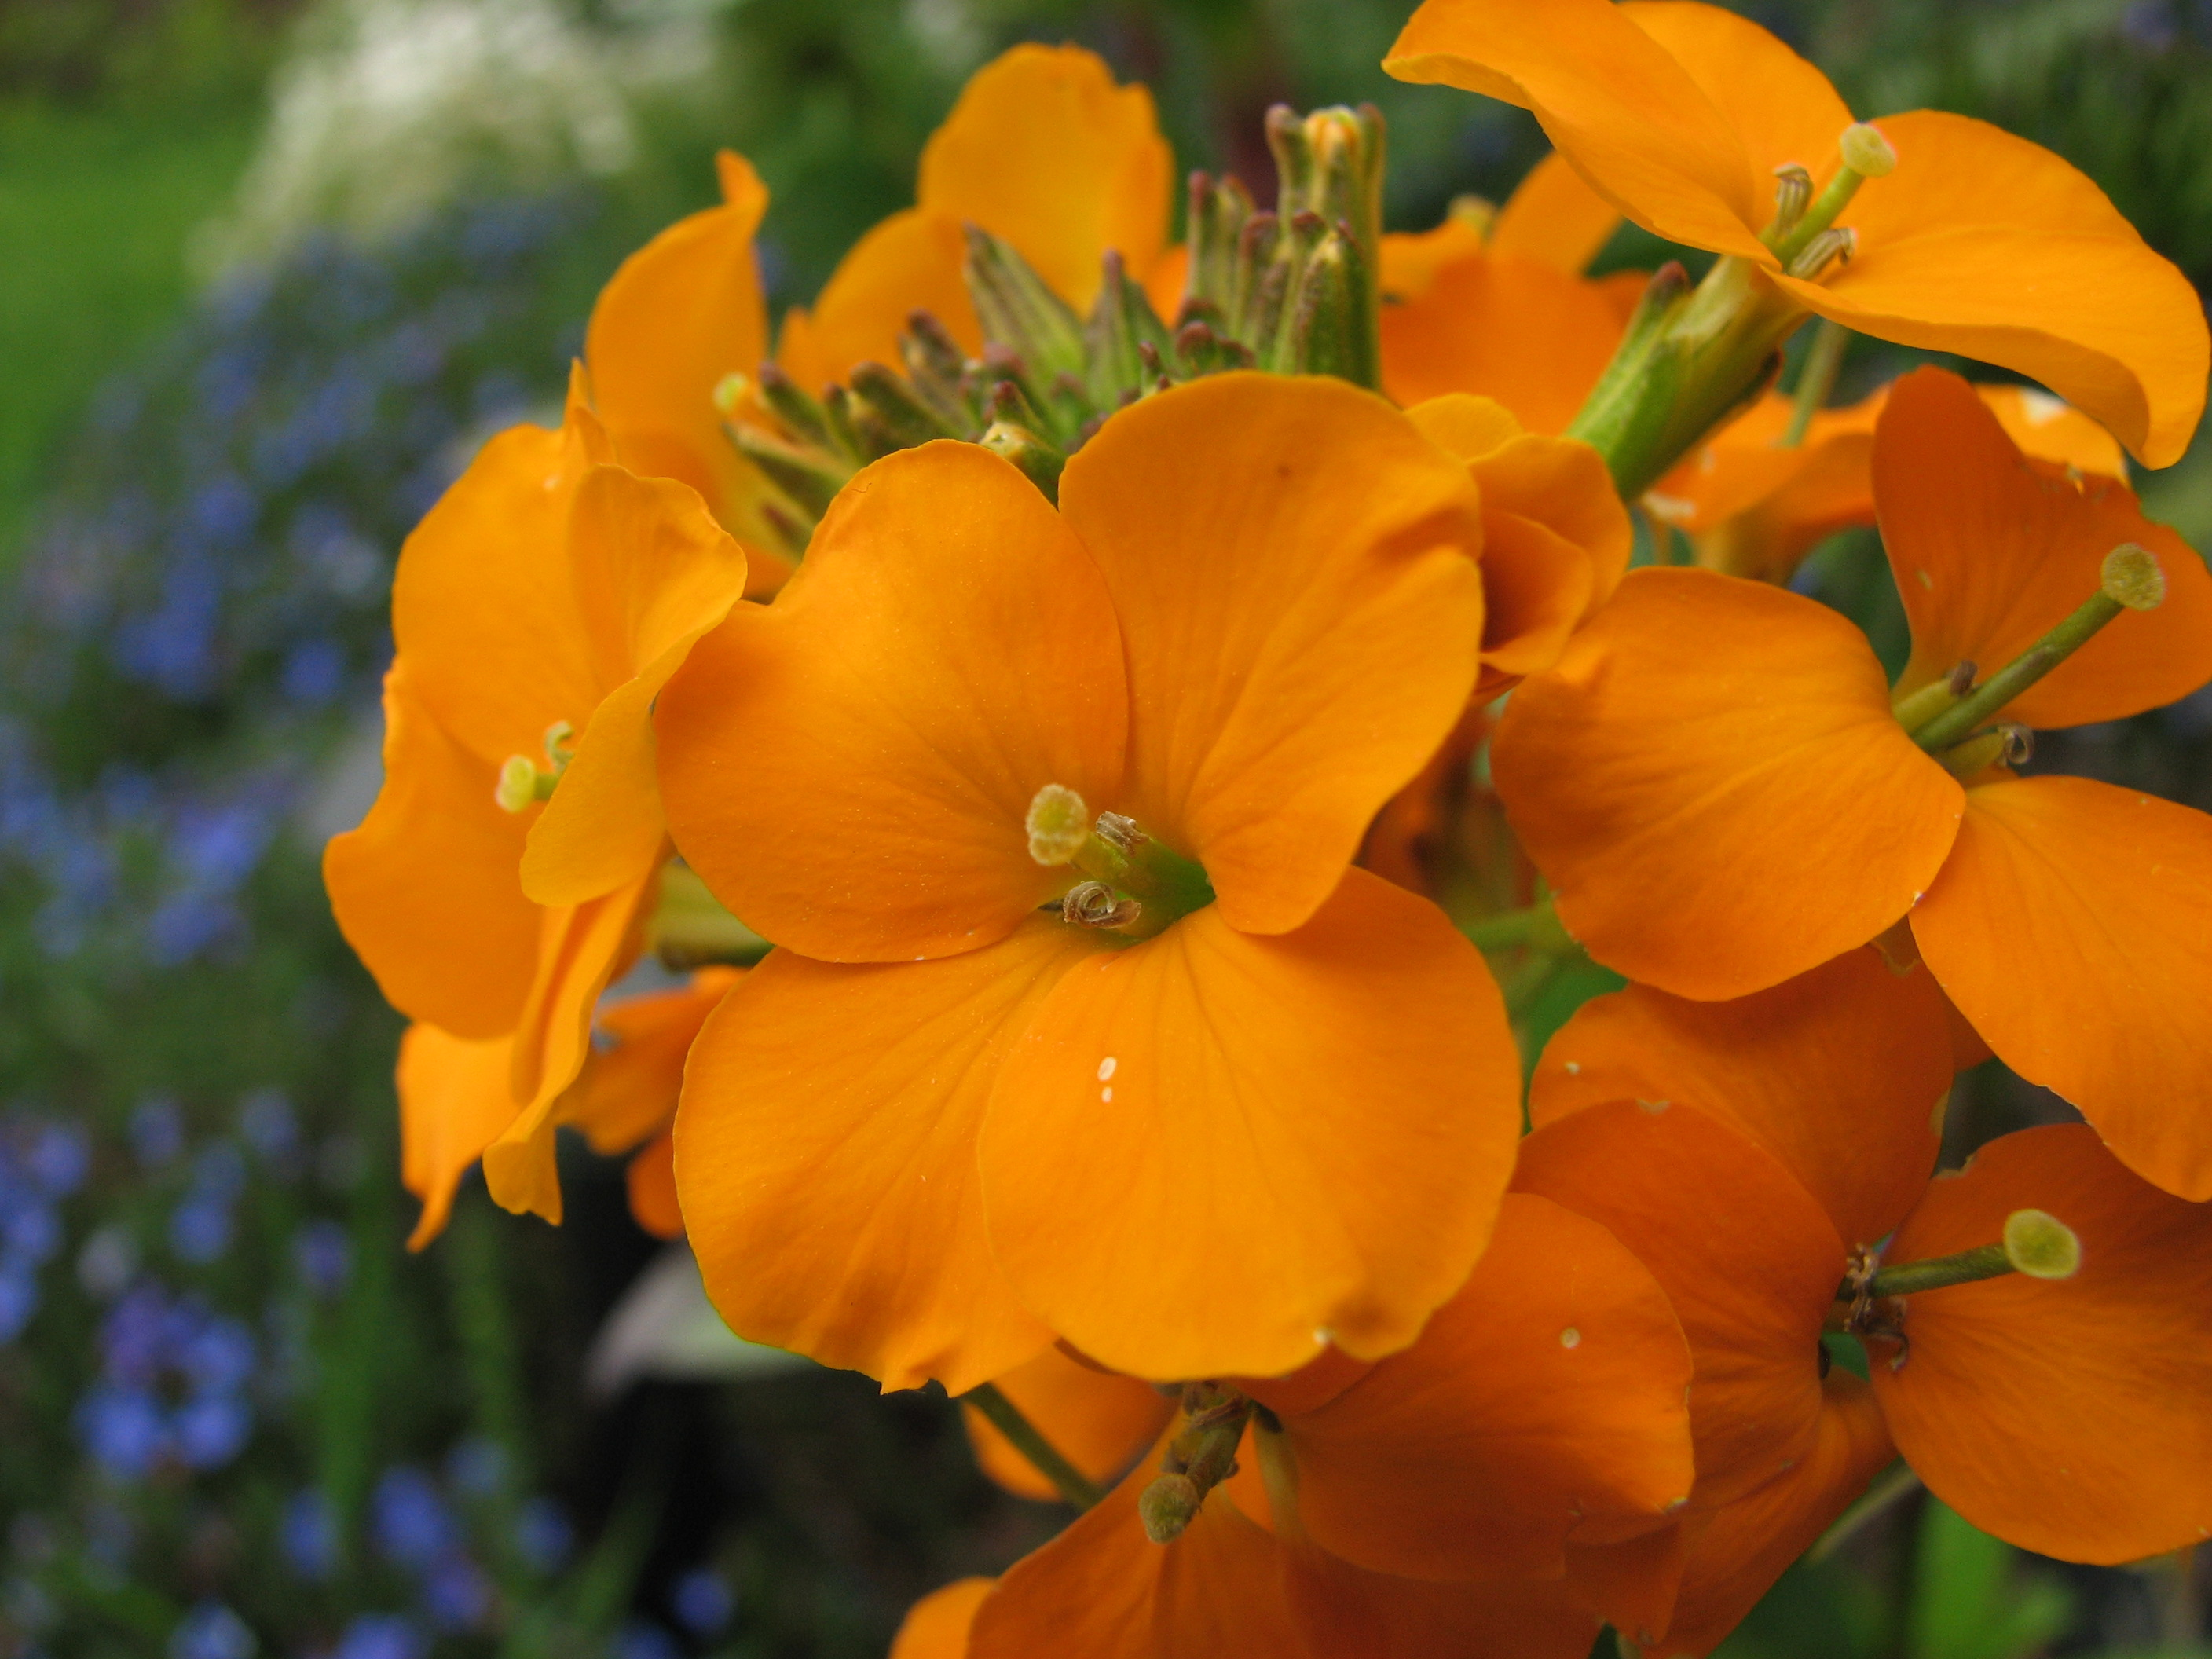 http://upload.wikimedia.org/wikipedia/commons/3/34/Erysimum_cheiri_gold_garden_flowers.jpg